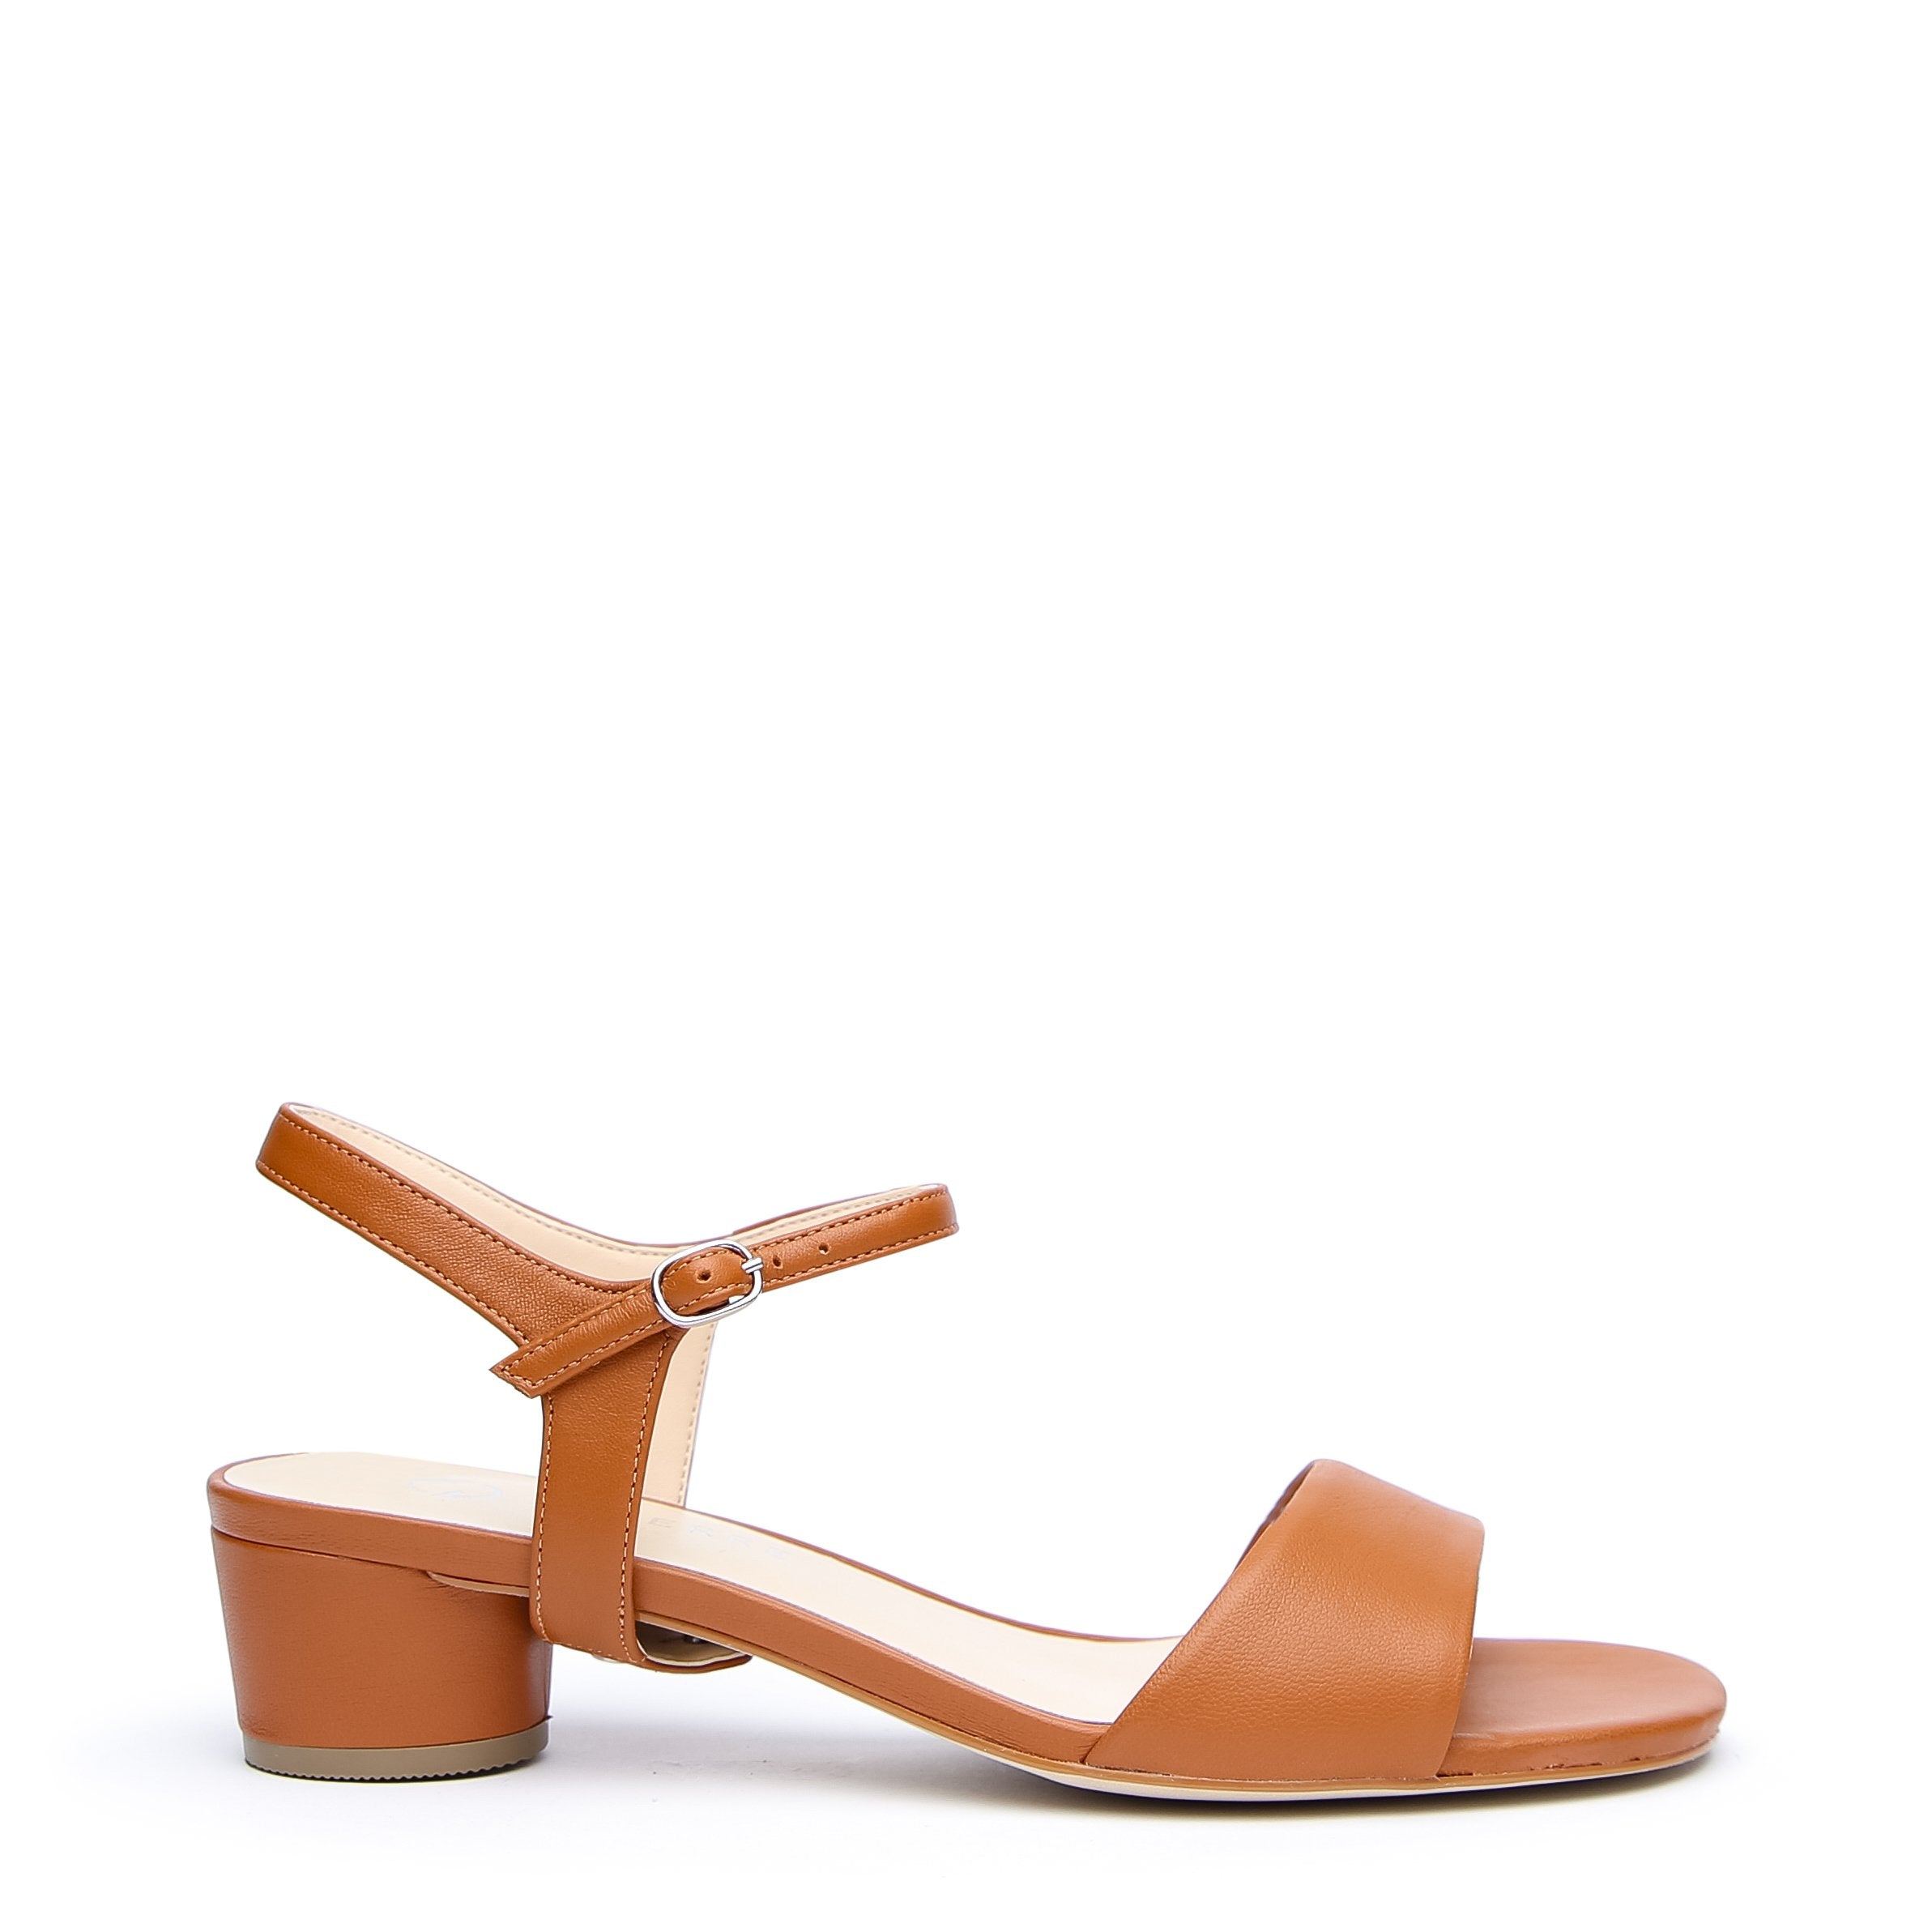 Brown Customized Sandals + Jackie Strap | Alterre Interchangeable Sandals - Sustainable Footwear & Ethical Shoes